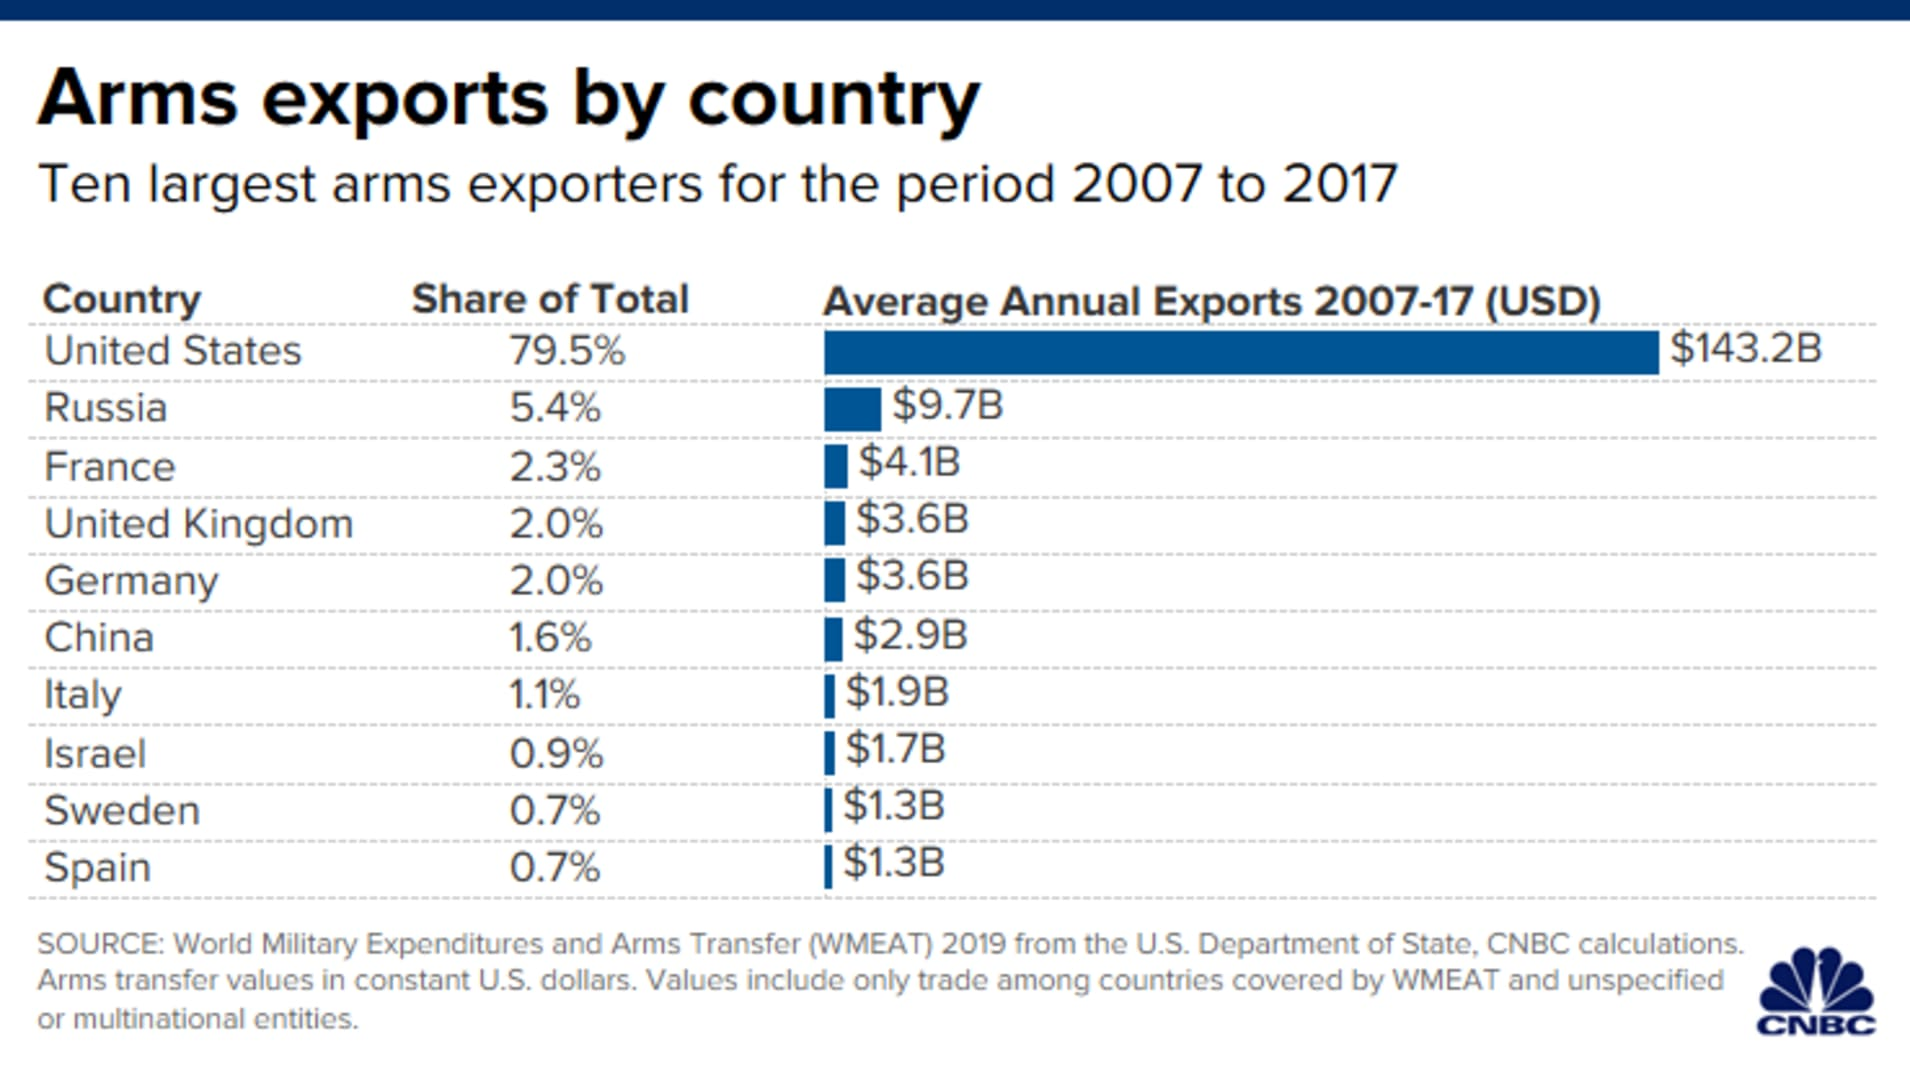 CH 20200123_arms_exports_by_country.png